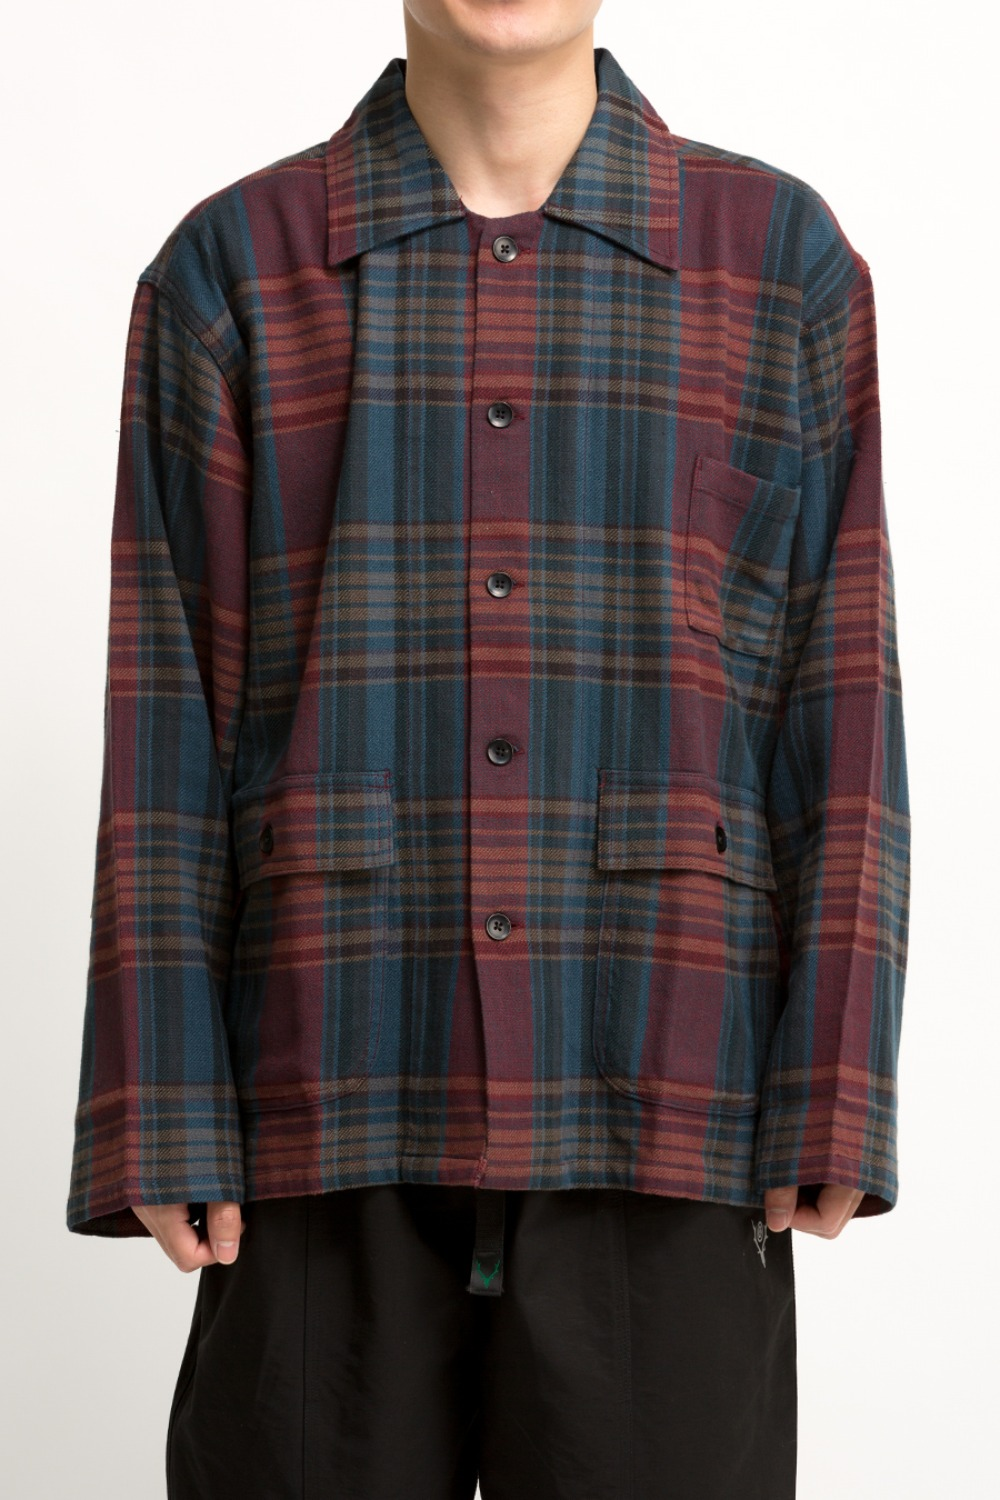 HUNTING SHIRT PLAID TWILL NAVY / RED